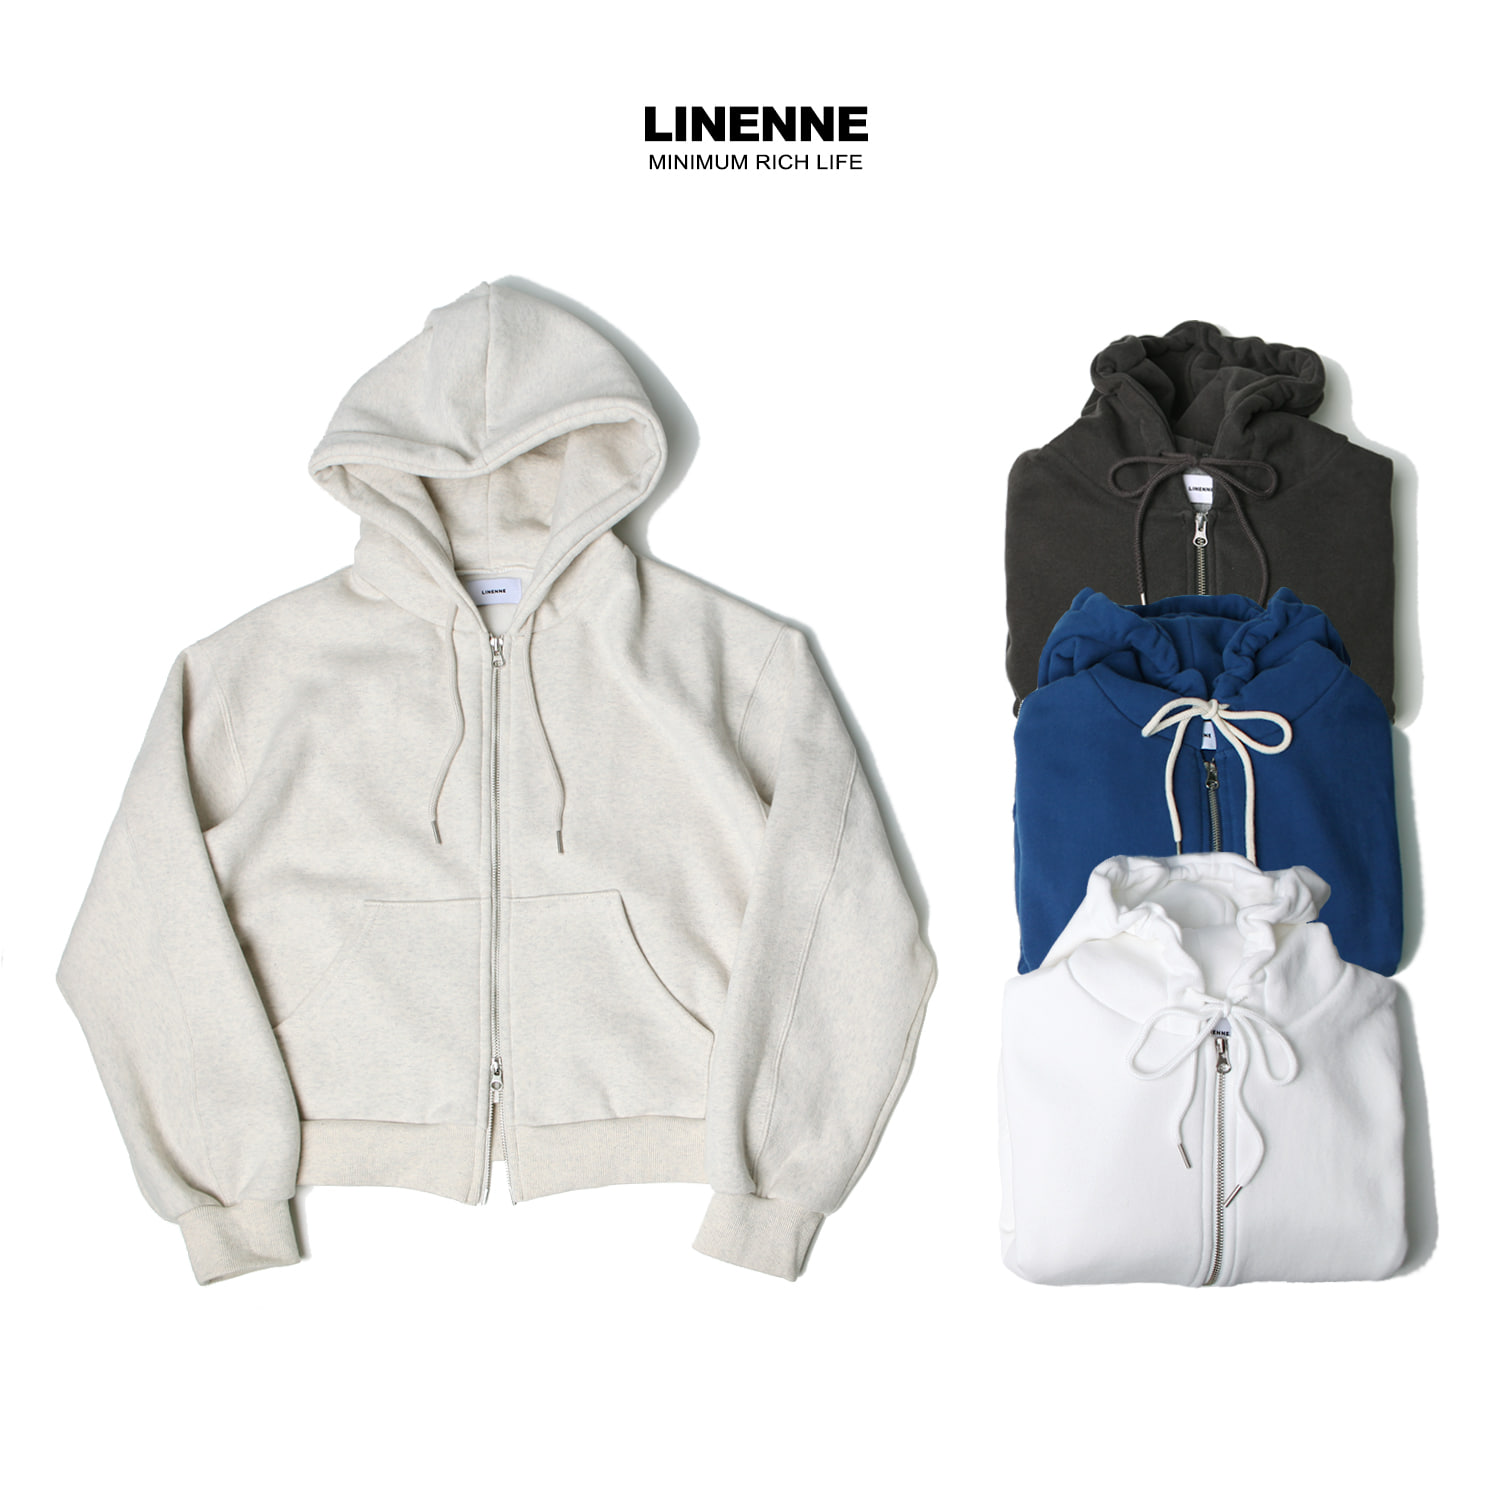 LINENNE product&minimum rich life